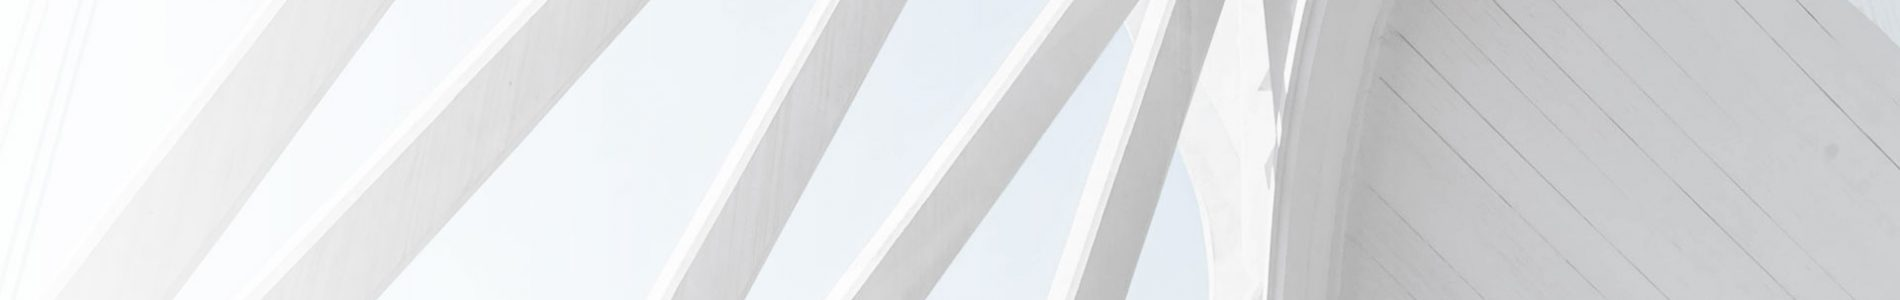 banner-home4